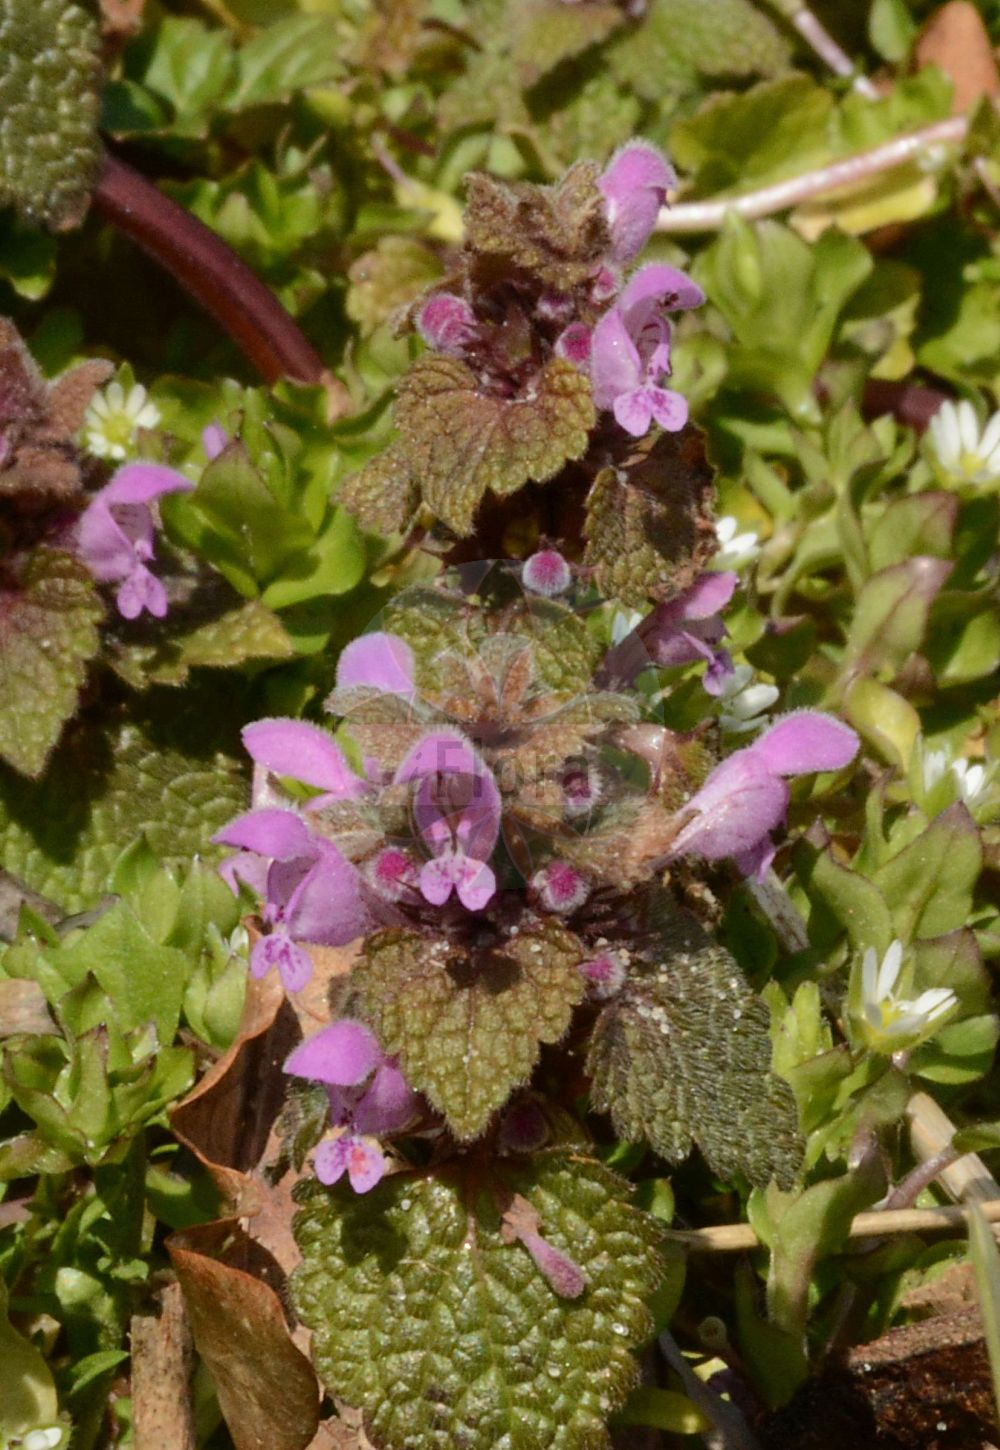 Foto von Lamium purpureum (Purpurrote Taubnessel - Red Dead-nettle). Das Foto wurde in Rendsburg-Eckernfoerde, Schleswig-Holstein, Deutschland, Jungmoraenenlandschaft Schleswig-Holstein Ost / Nordwest-Mecklenburg aufgenommen. ---- Photo of Lamium purpureum (Purpurrote Taubnessel - Red Dead-nettle).The picture was taken in Rendsburg-Eckernfoerde, Schleswig-Holstein, Germany, Jungmoraenenlandschaft Schleswig-Holstein Ost / Nordwest-Mecklenburg.(Lamium purpureum,Purpurrote Taubnessel,Red Dead-nettle,Lamiopsis purpurea,,Eingeschnittene Taubnessel,i.w.S.,Purple Archangel,Purple Deadnettle,Red Henbit,Lamium,Taubnessel,Deadnettle,Lamiaceae,Lippenbluetengewaechse;Lippenbluetler,Nettle family)